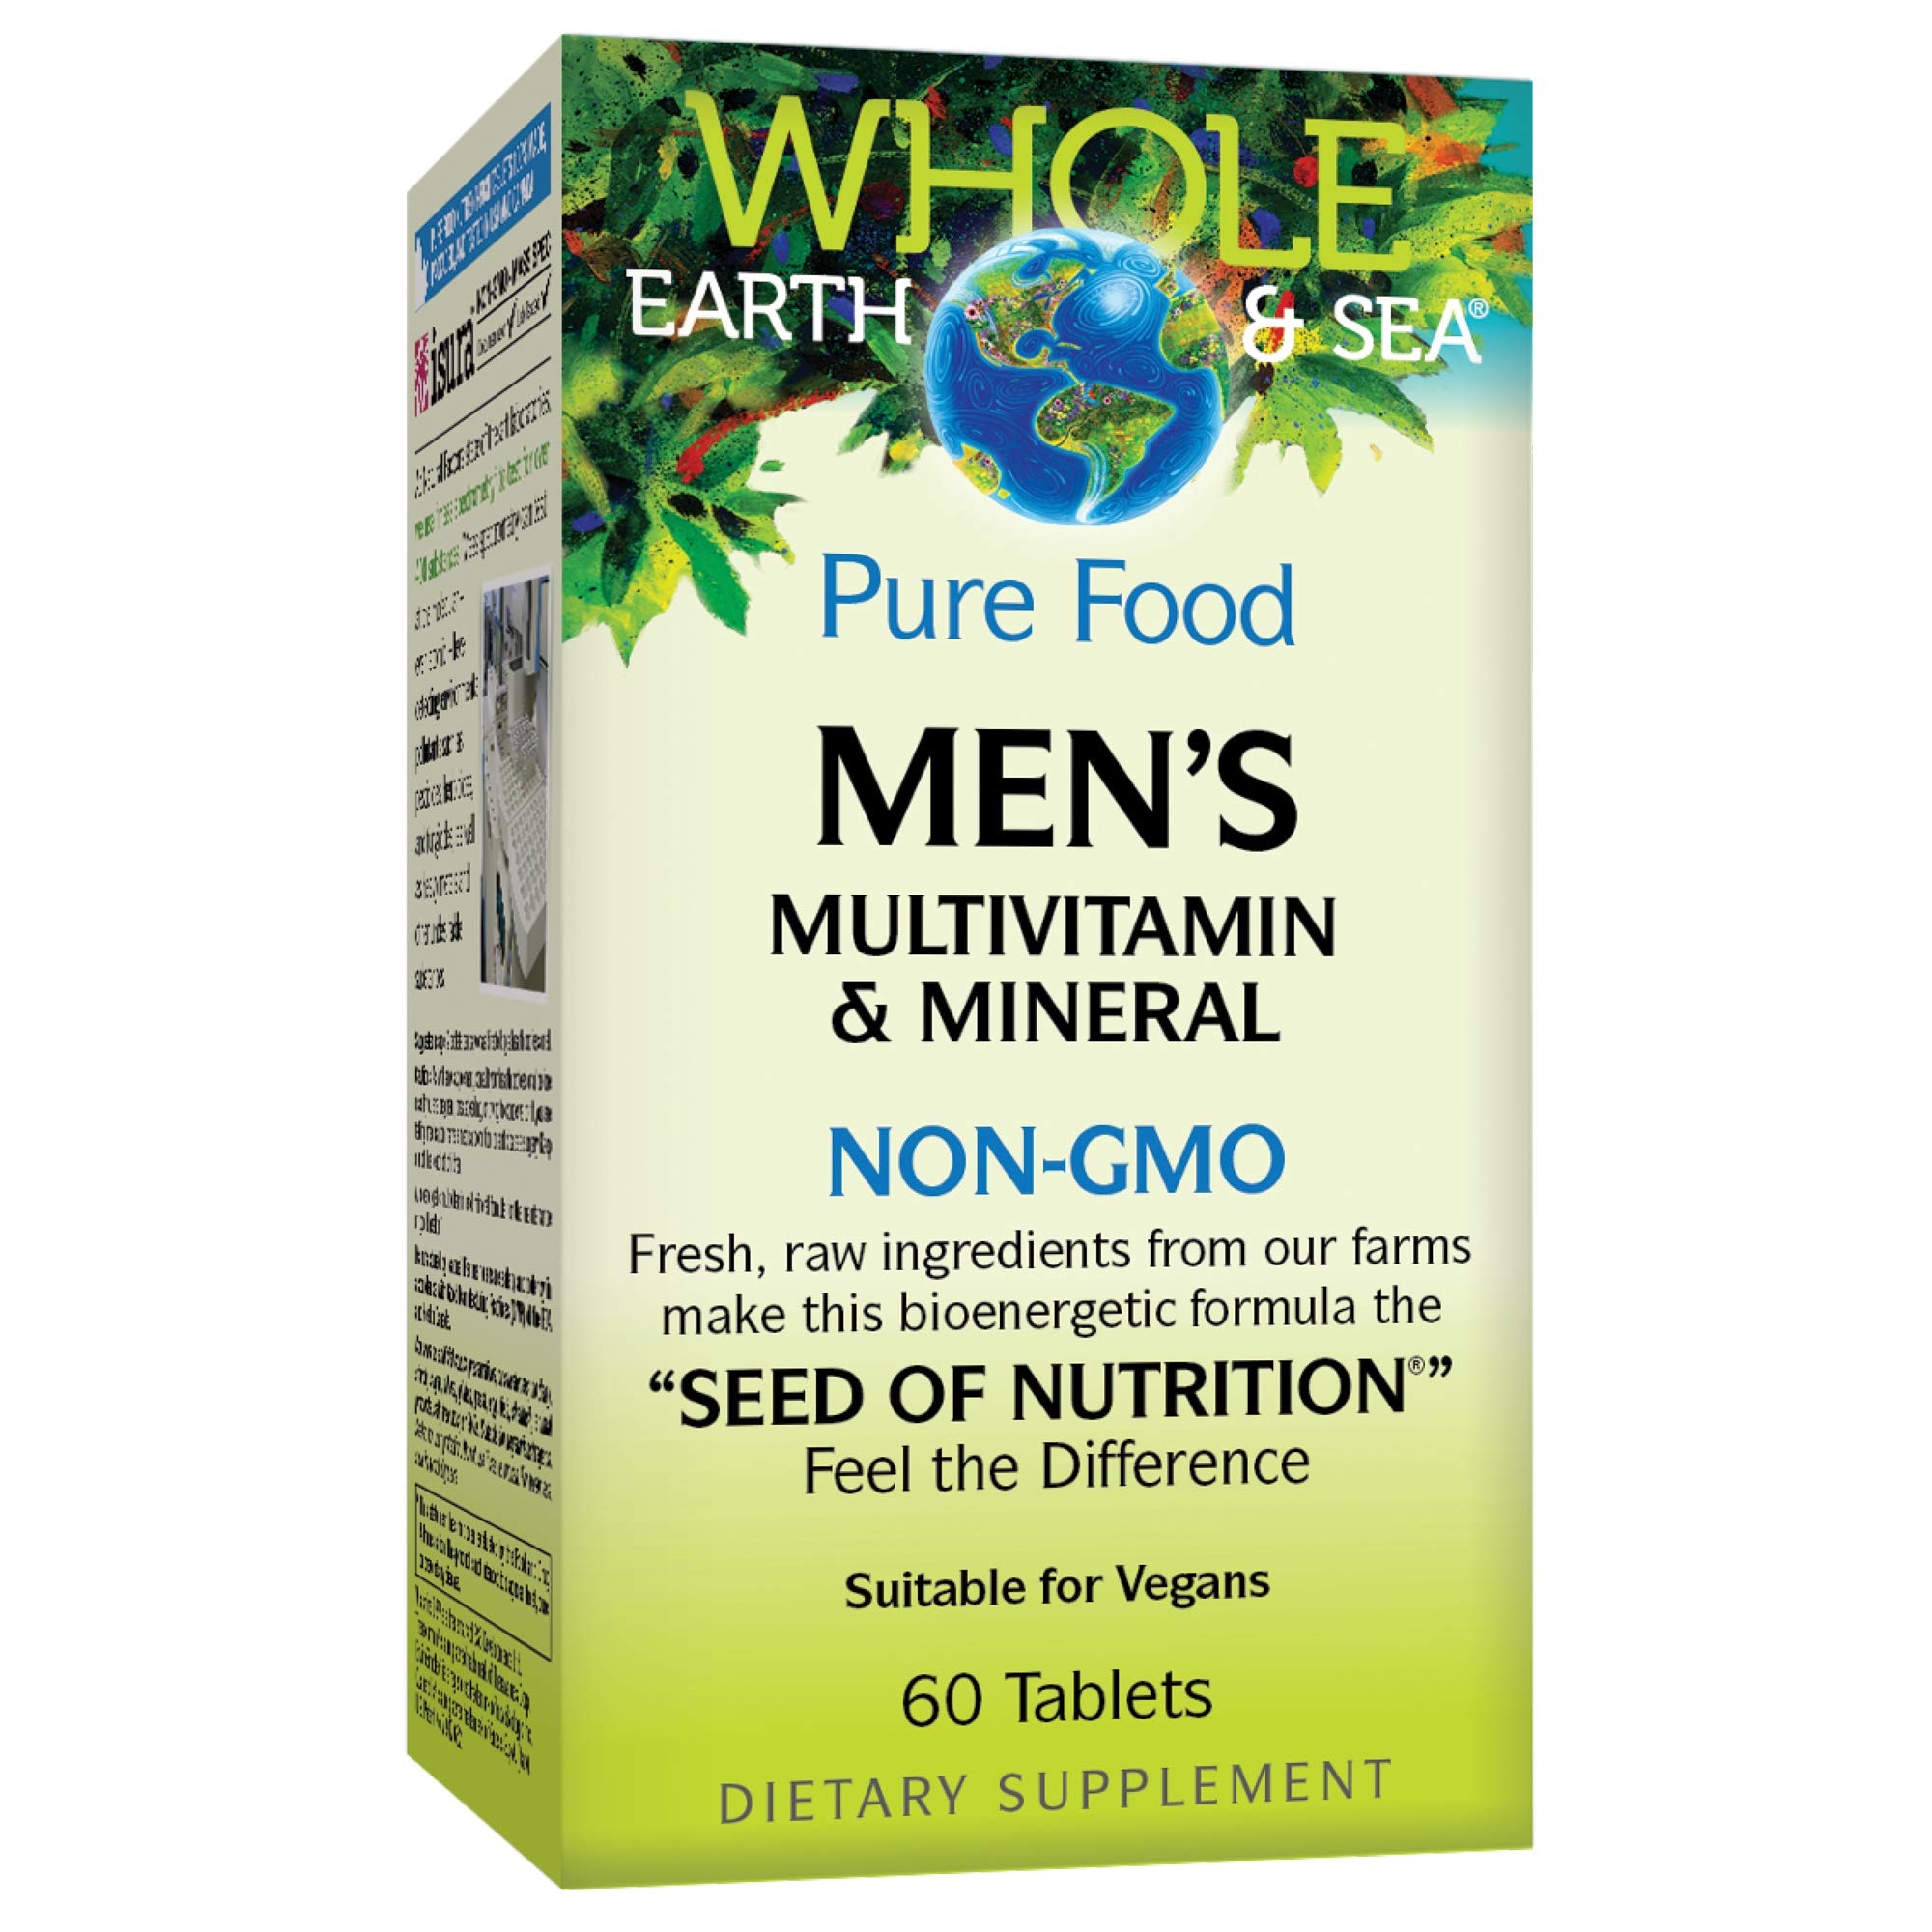 Whole Earth & Sea from Natural Factors, Men's Multivitamin & Mineral, Whole Food Supplement, Vegan and Gluten Free, 60 Tablets (30 Servings) by Natural Factors